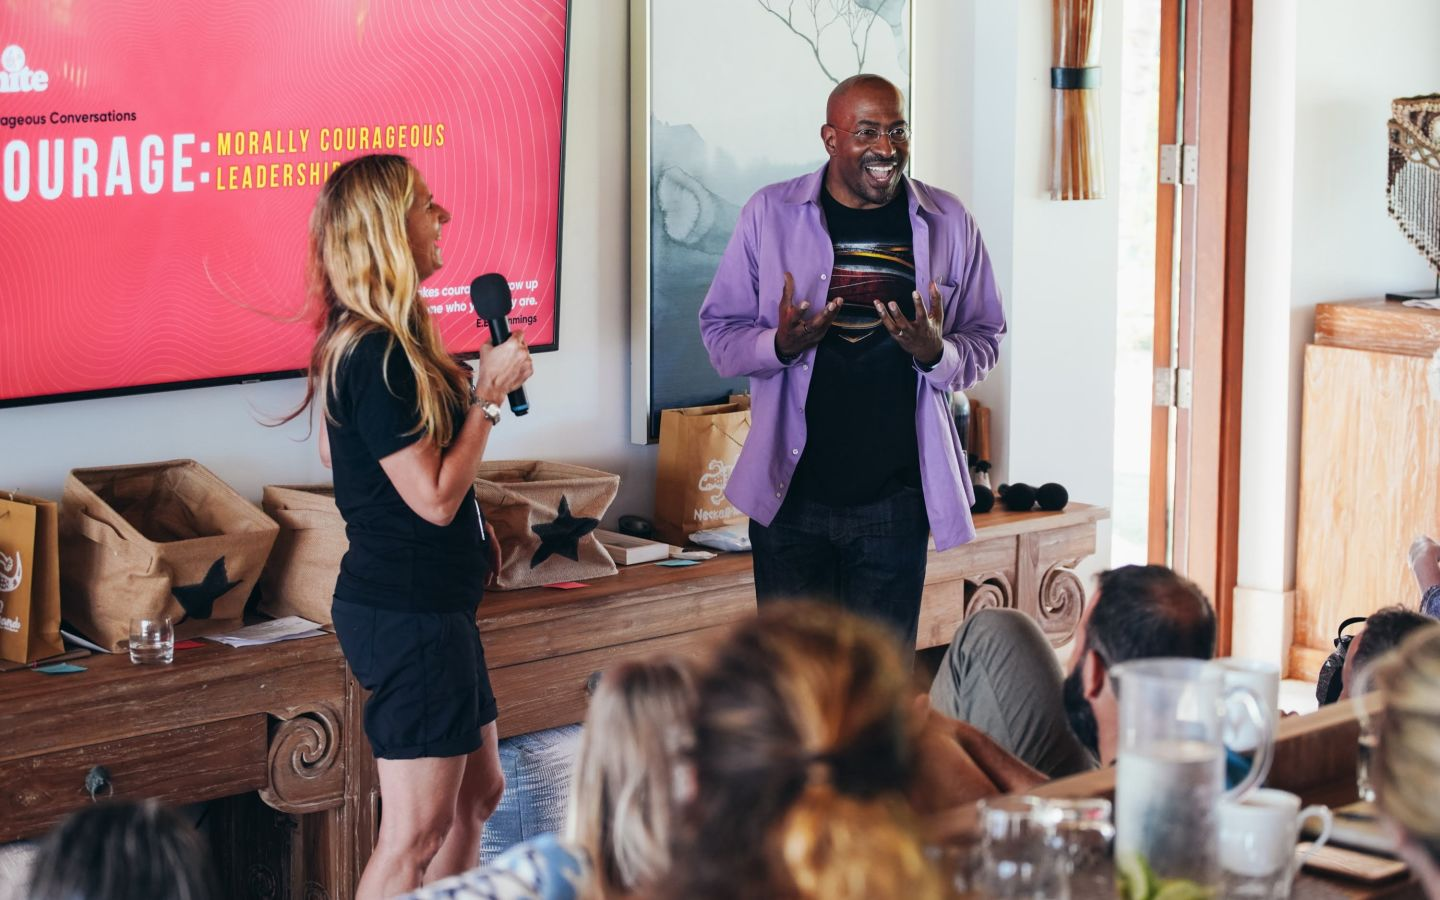 Van Jones and Jean Oelwang smiling and speaking to a group during a Virgin Unite gathering